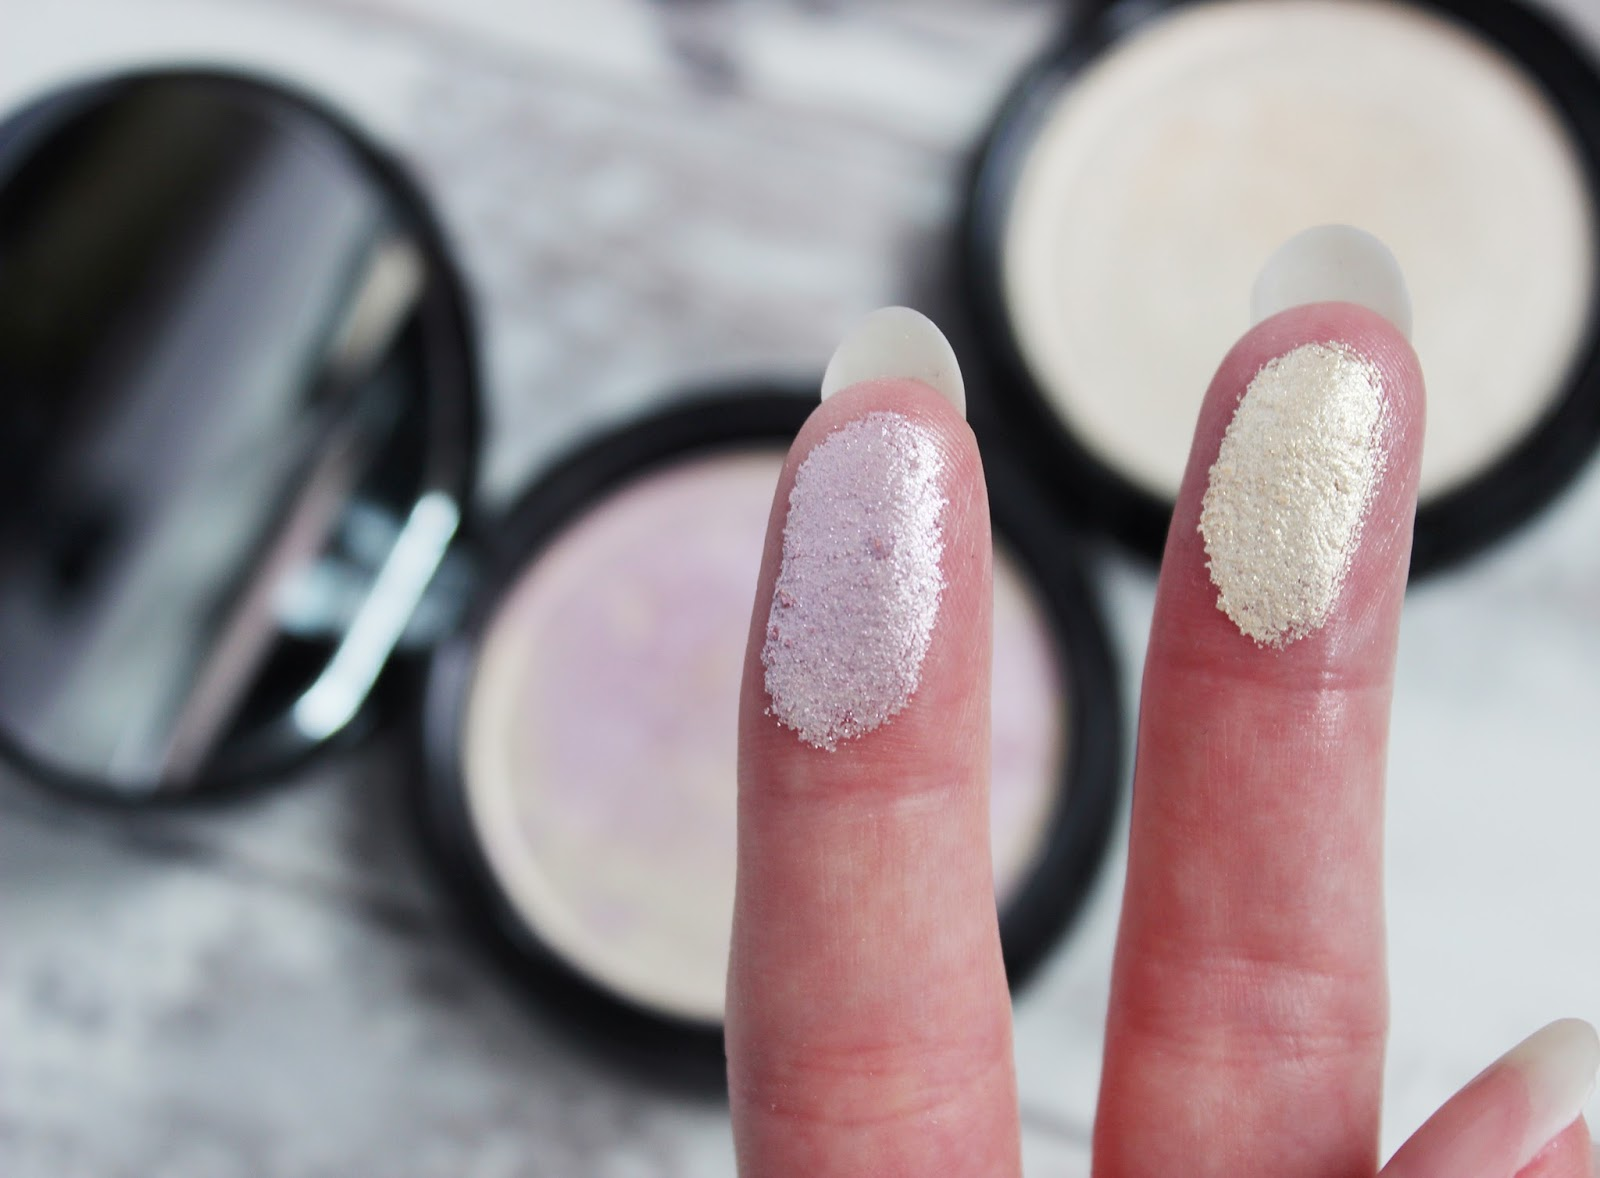 Phee's Makeup shop Glow highlighter review and swatches